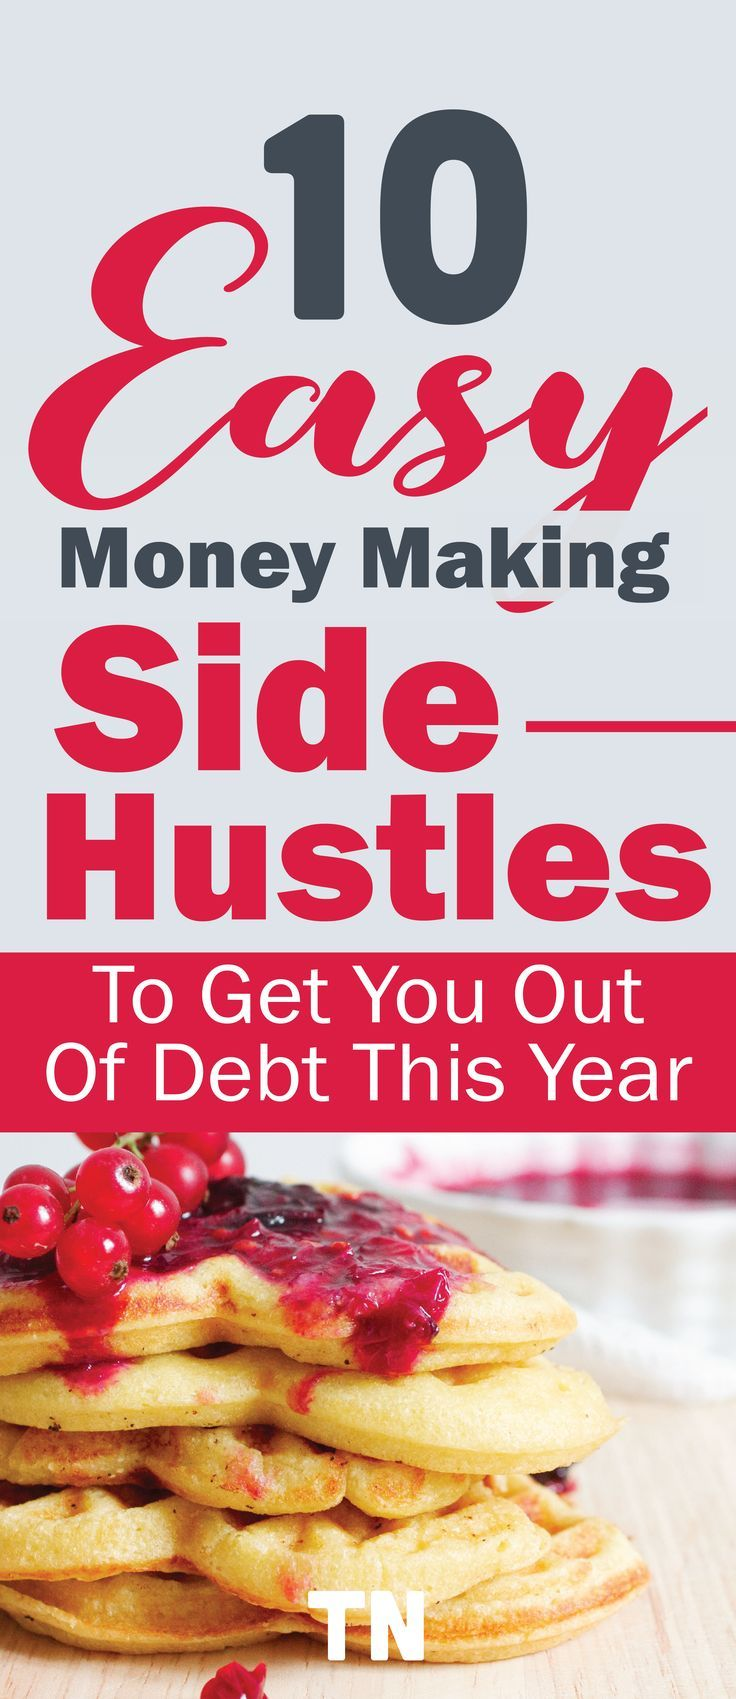 The 10 Easiest Side Hustles You Can Start This Weekend With Little Money | Personal Finance | Get Rid of Debt | Make Extra Money | Side Hustle Ideas for Beginners | Make Money Online | Passive Income for Introverts | Work From Home |